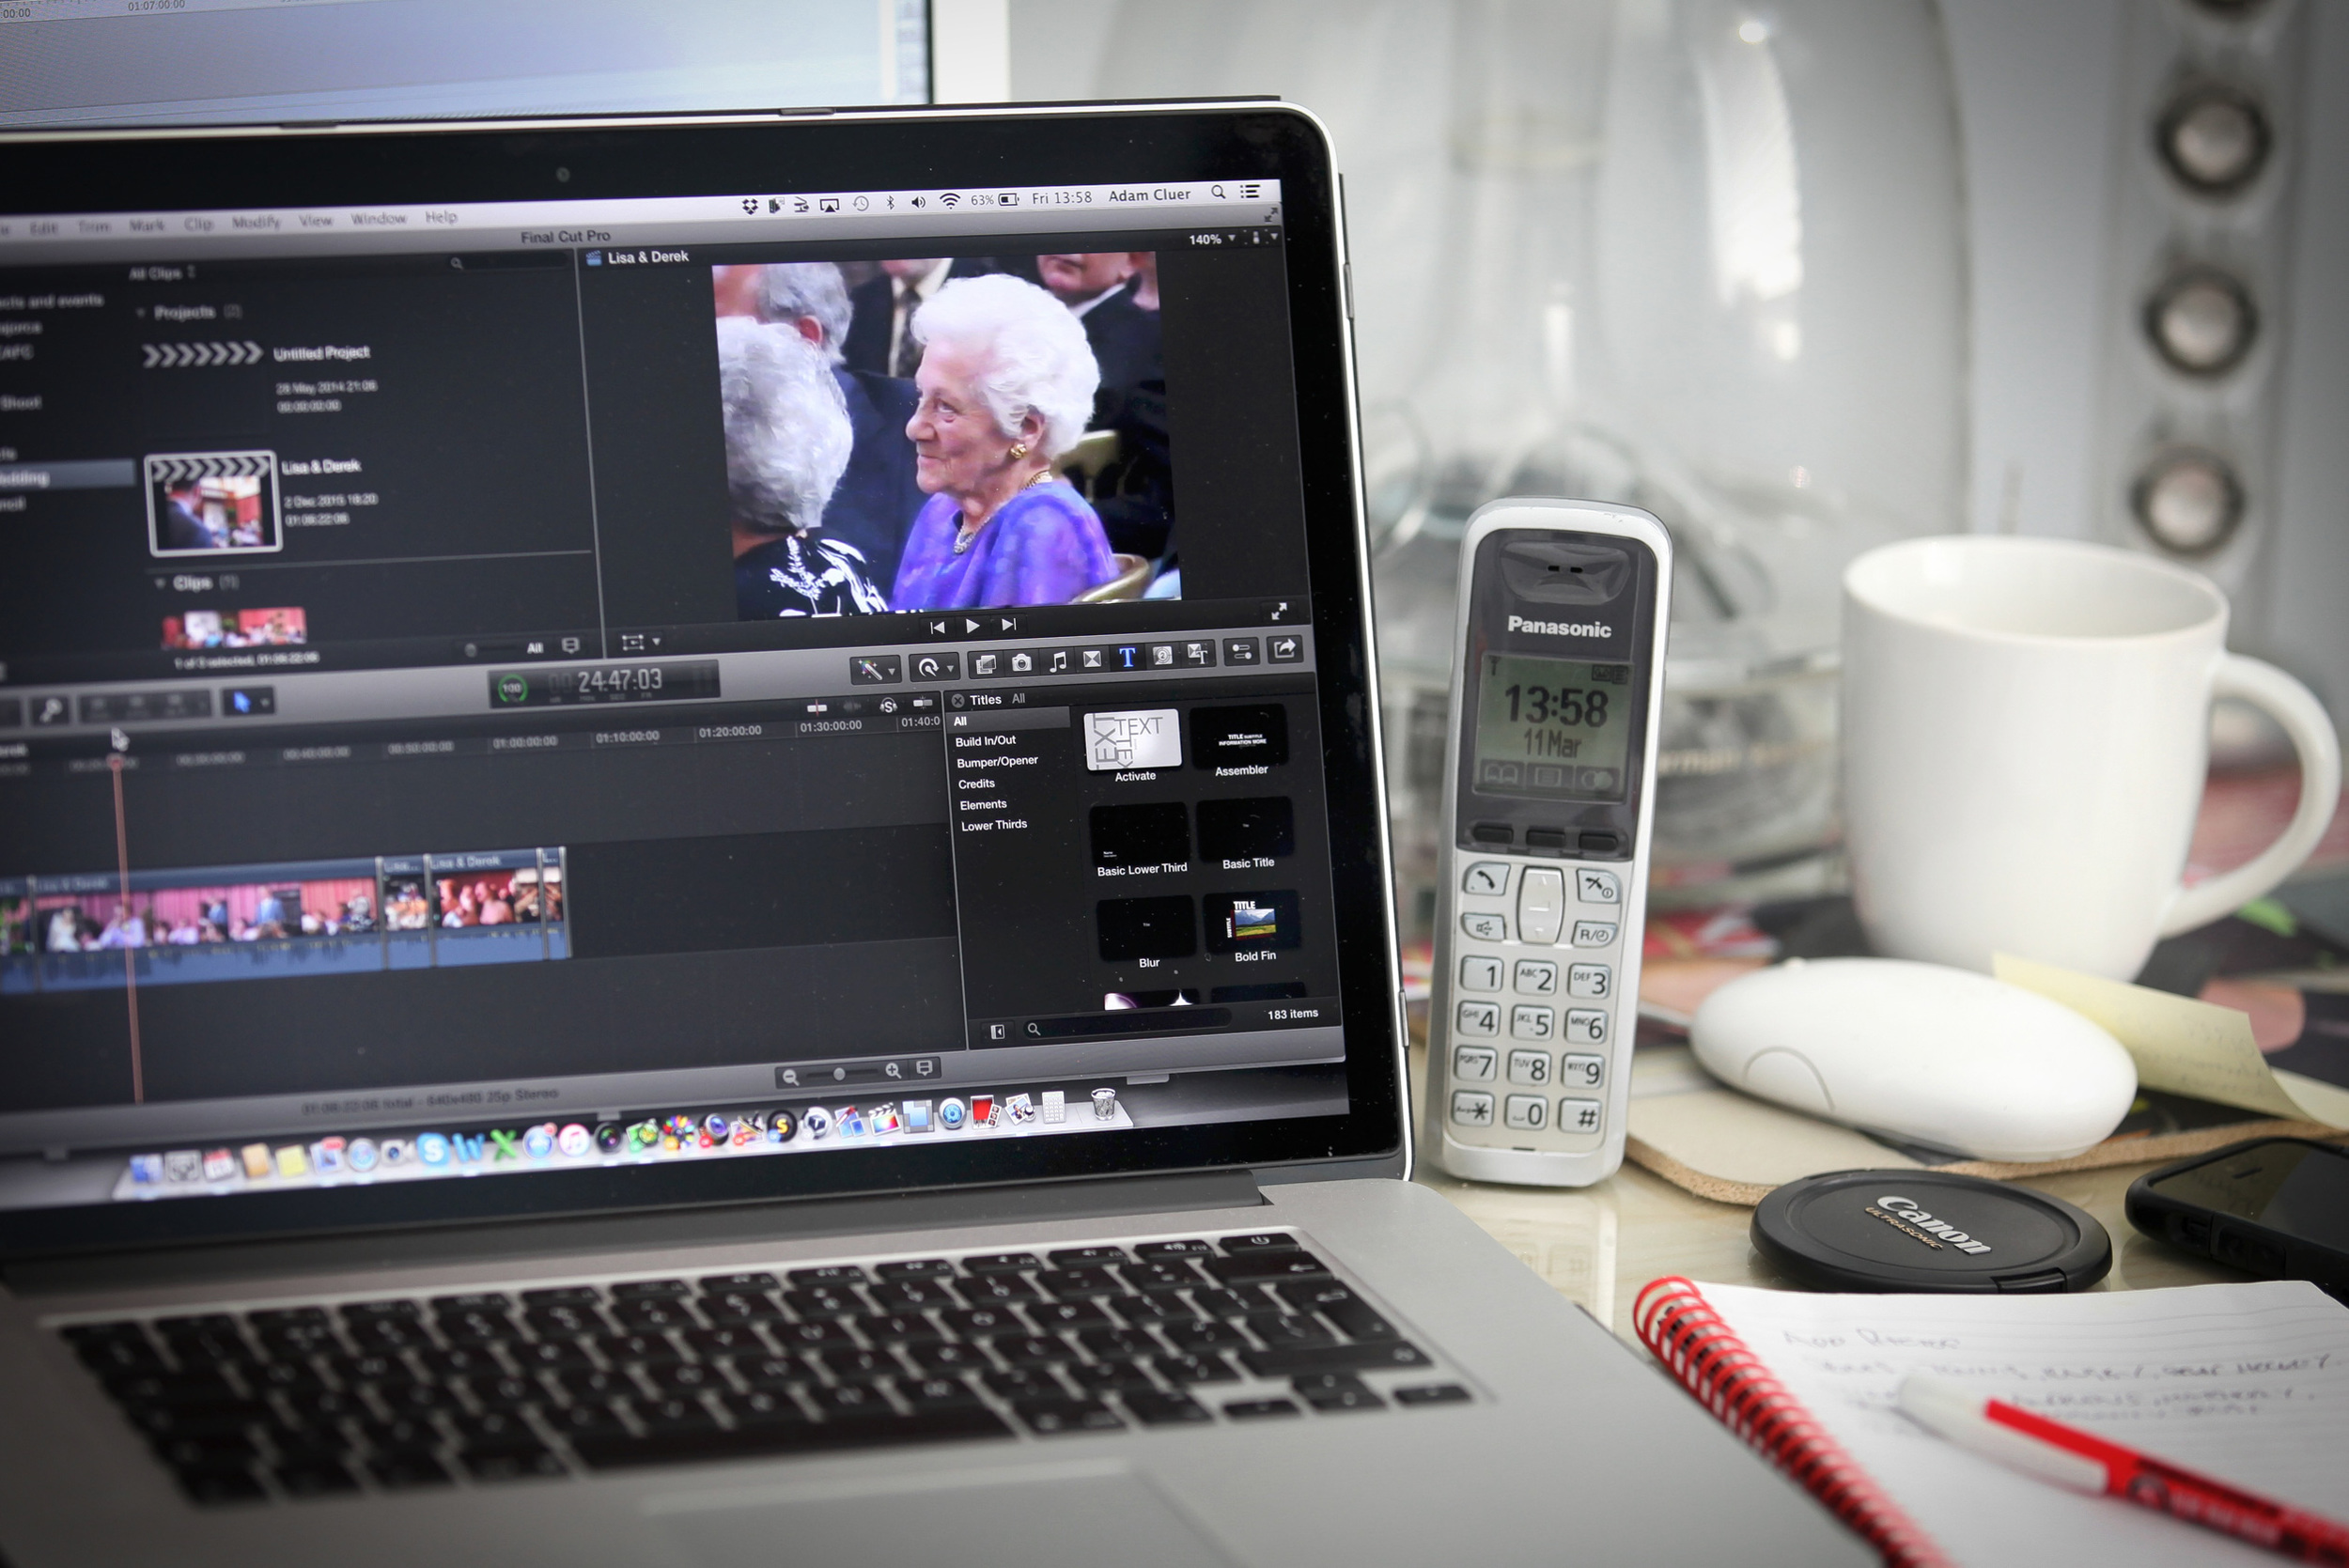 VIDEO RE-EDITING